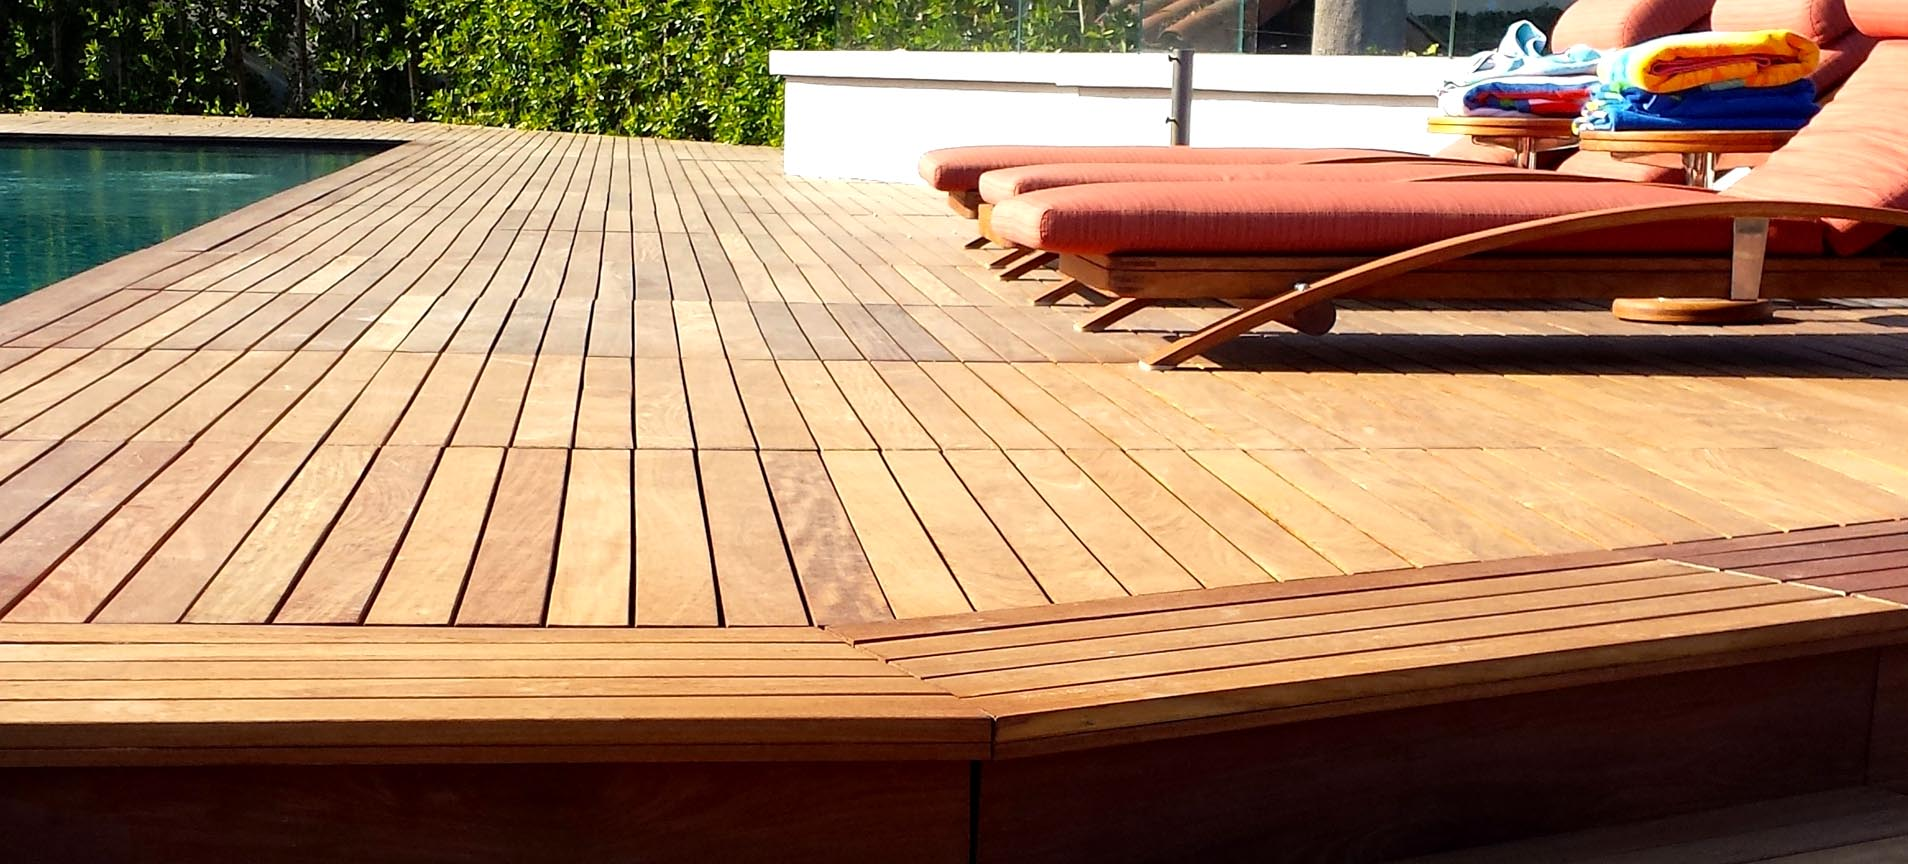 Why Building a New Deck is Better Than Re-Decking